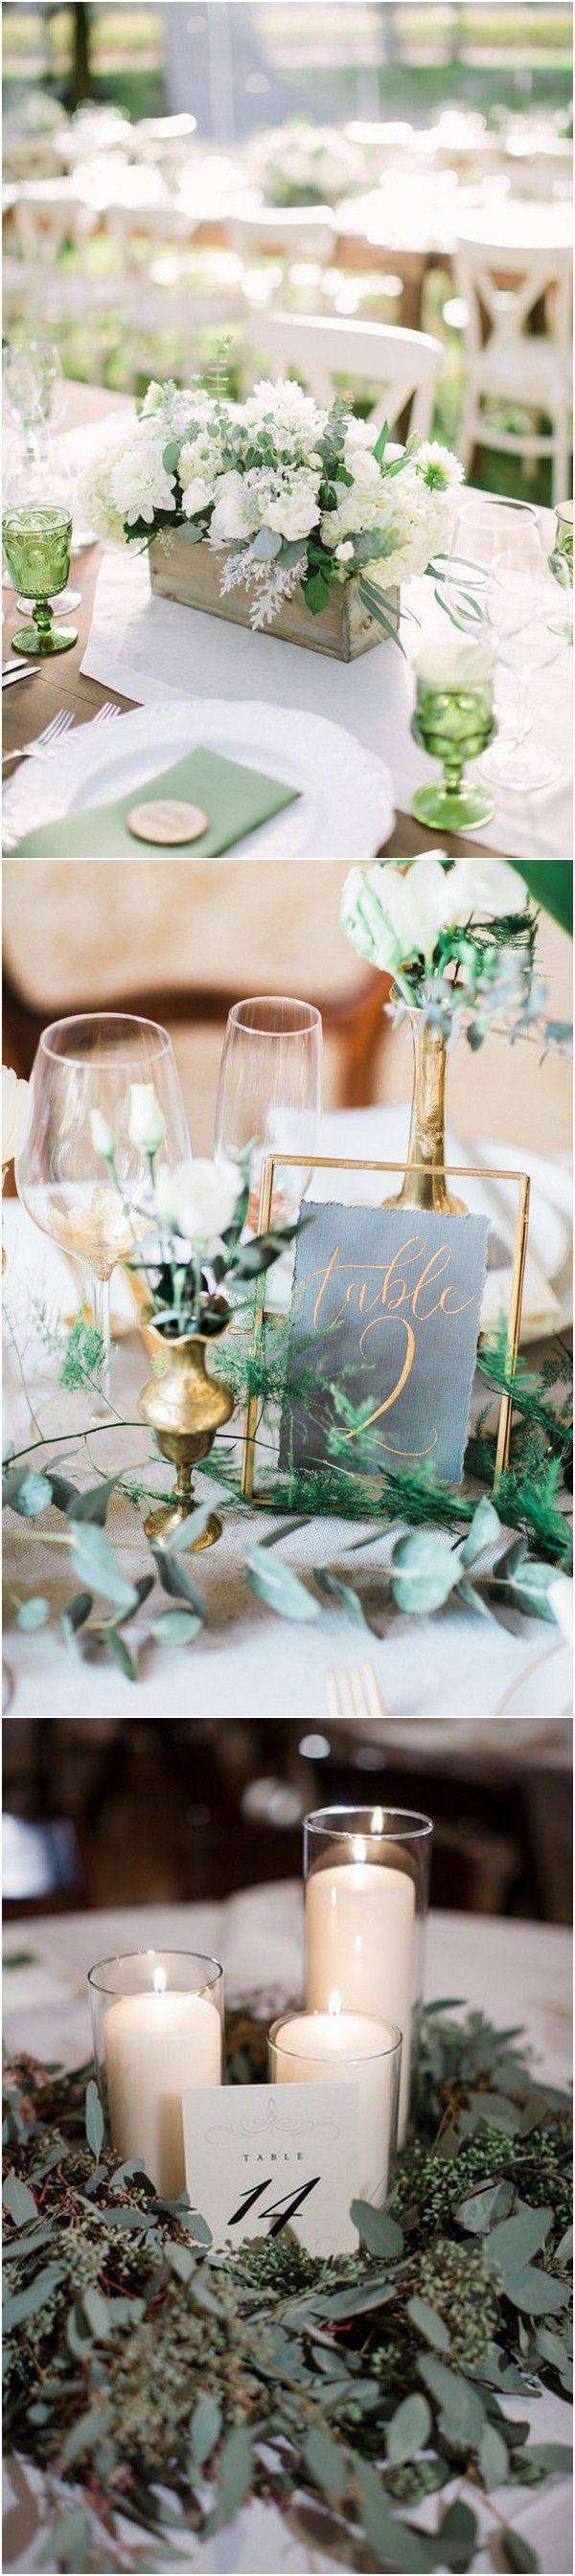 chic rustic white and green wedding centerpiece